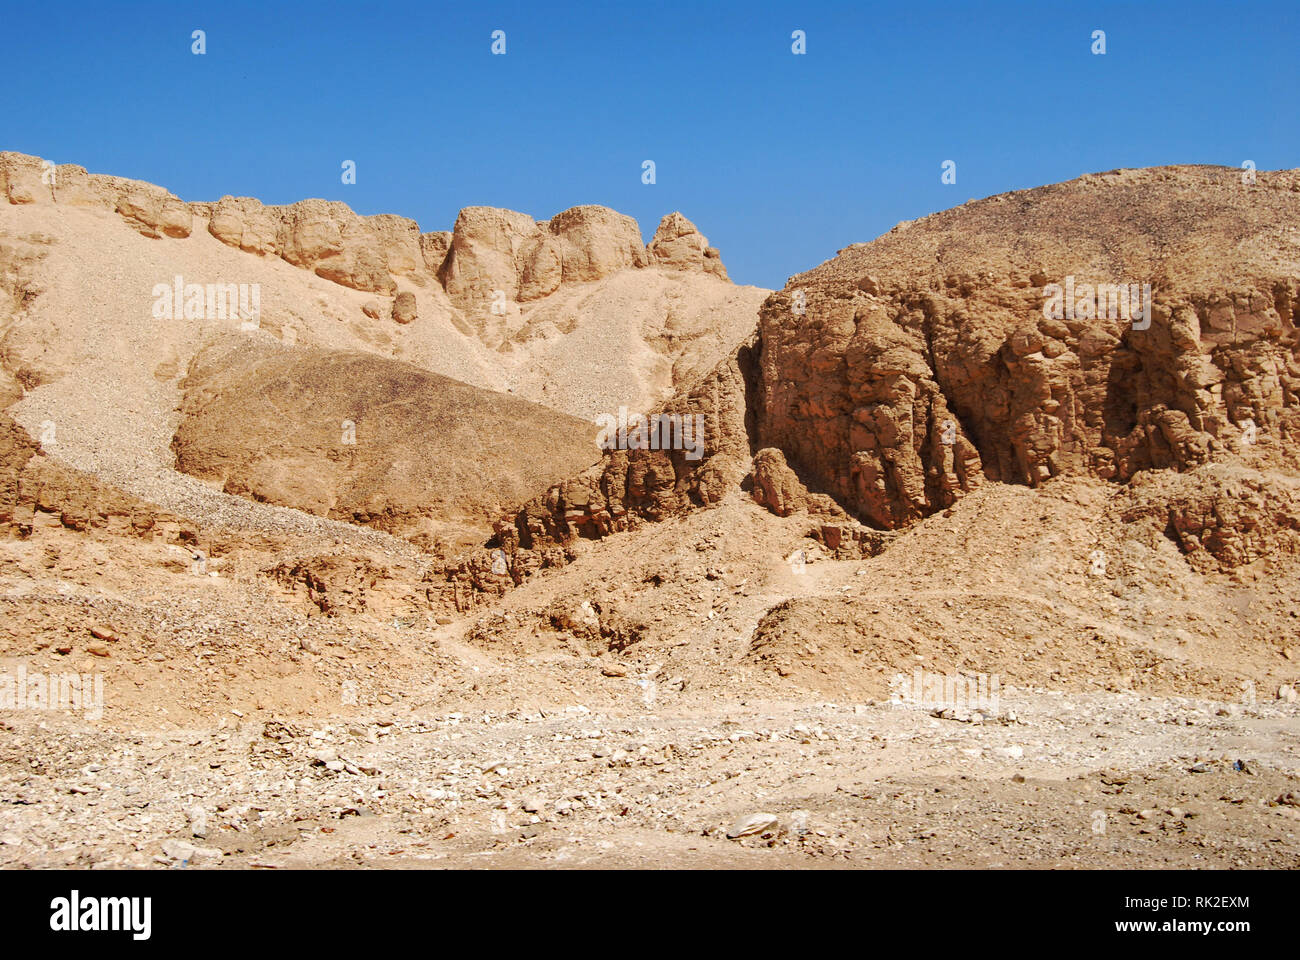 Valley of the Kings, Egypt - Stock Image